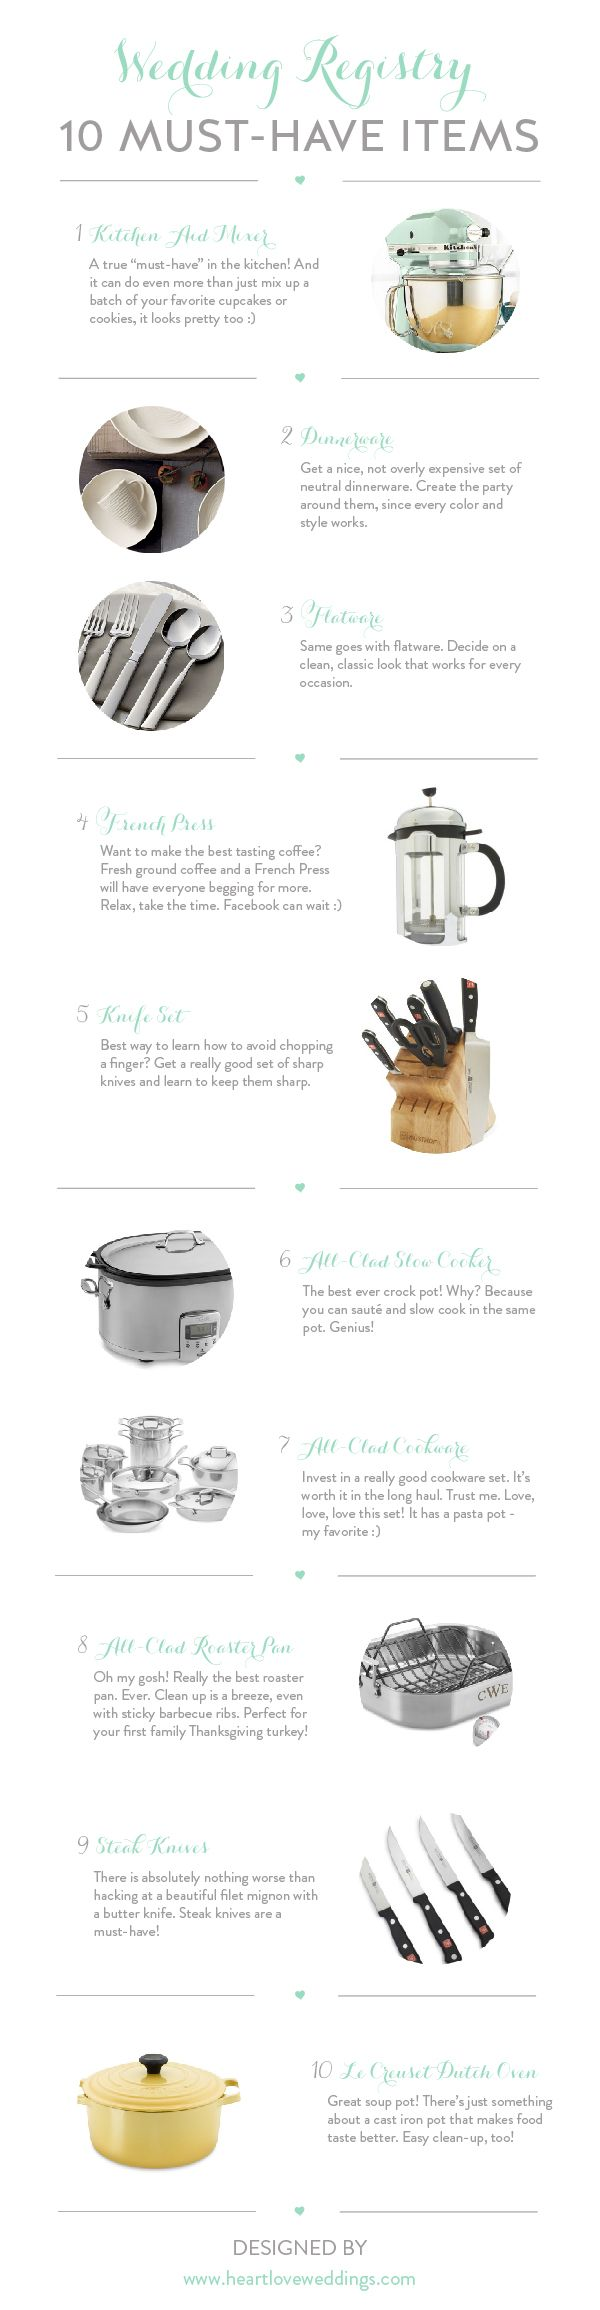 Top 10 Must Have Items For The Kitchen And Or Entertaining That Should Be Included When Registering Your Wedding Gifts